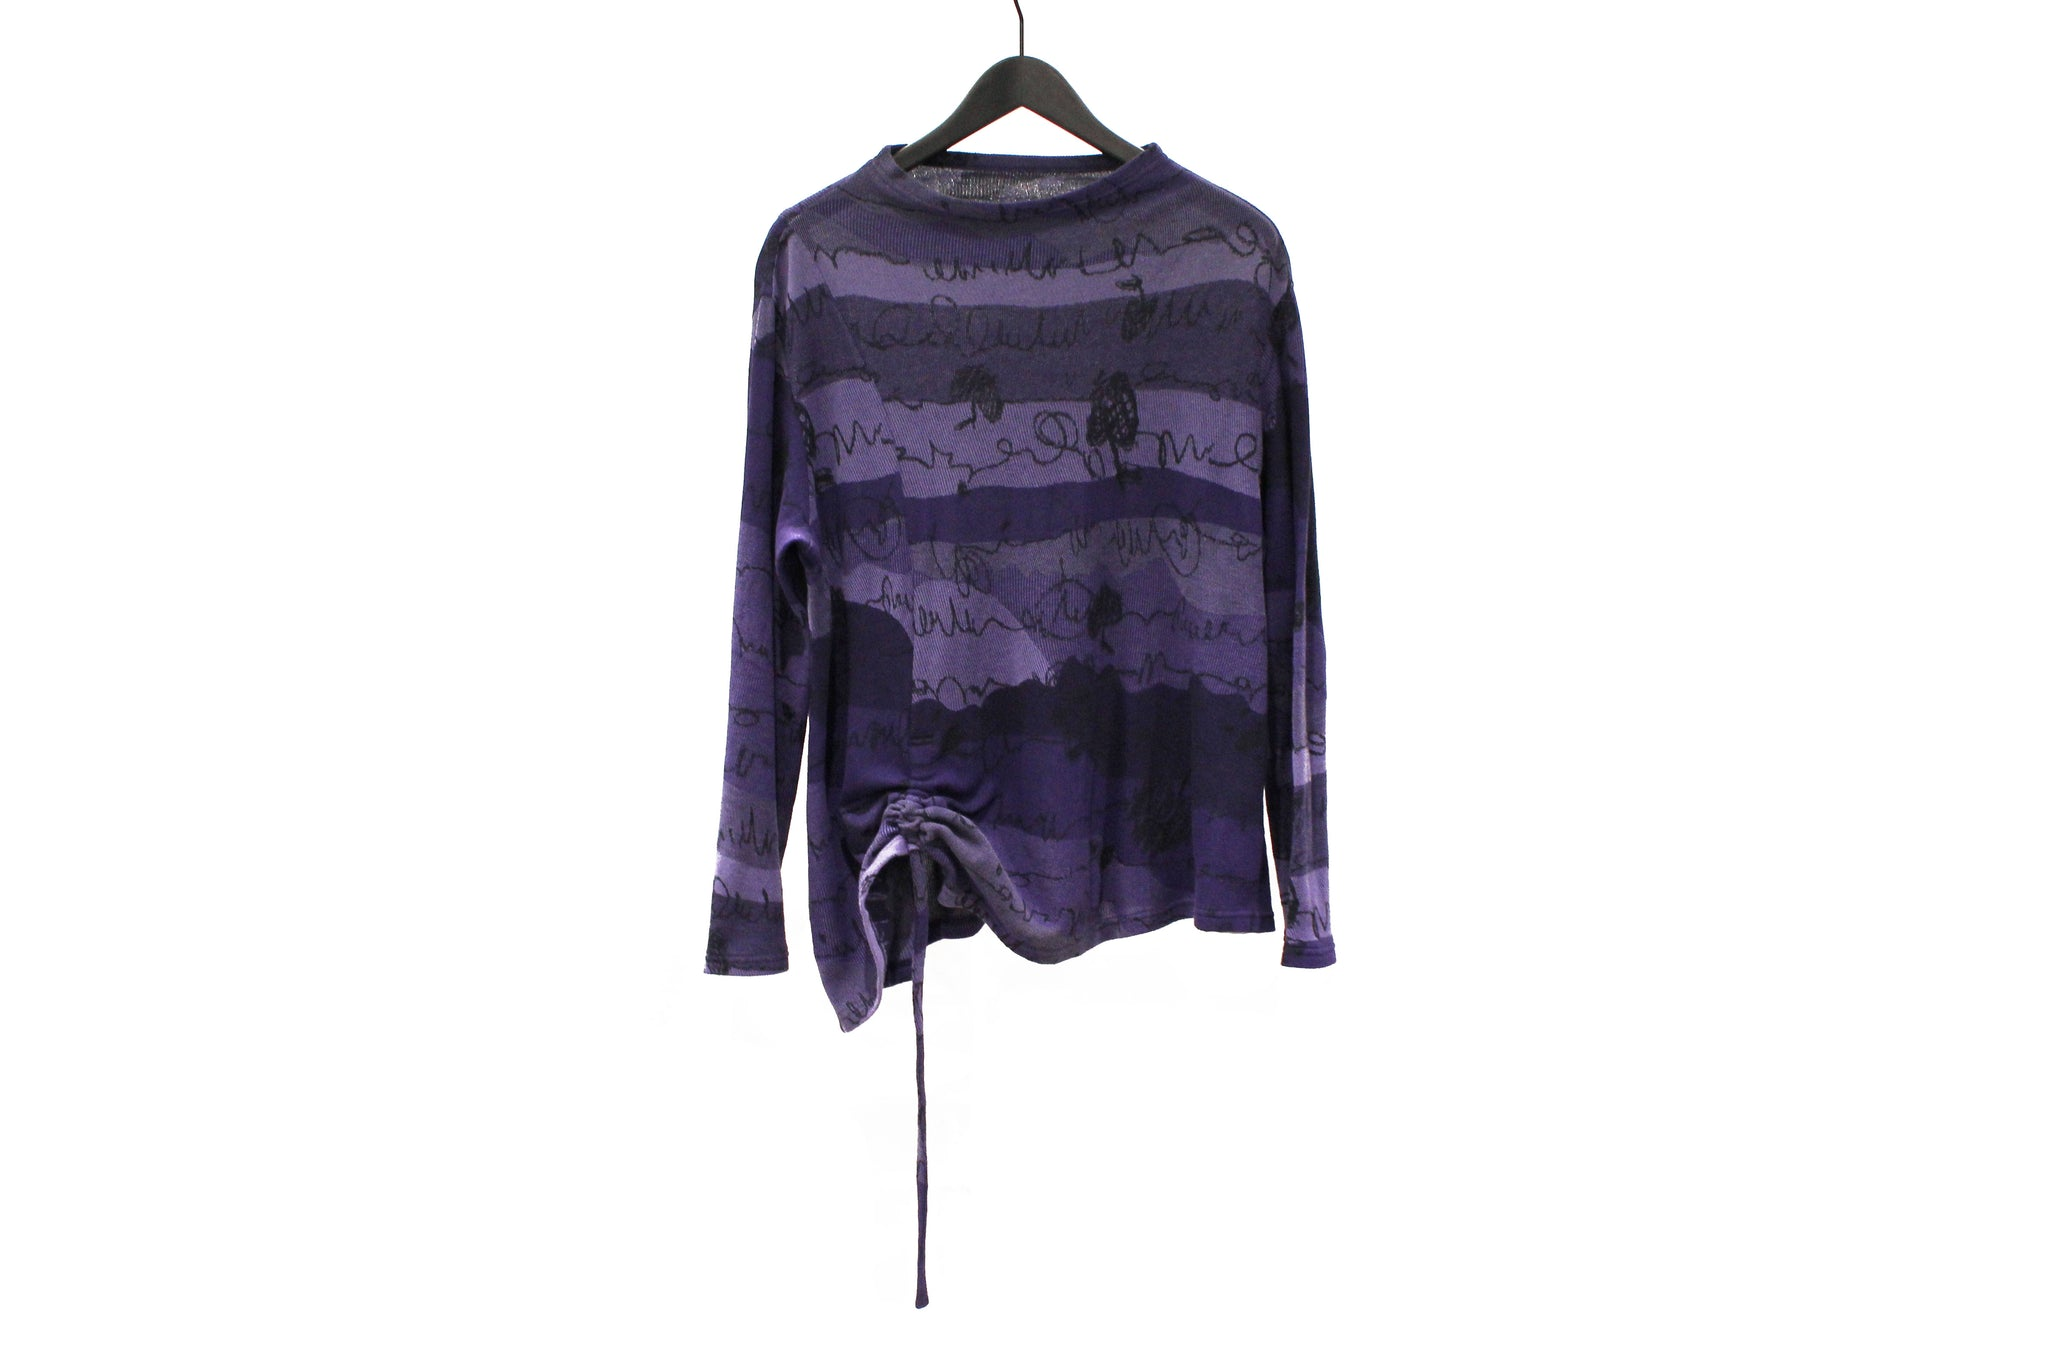 JI-U Purple Scribble Long Sleeve Top